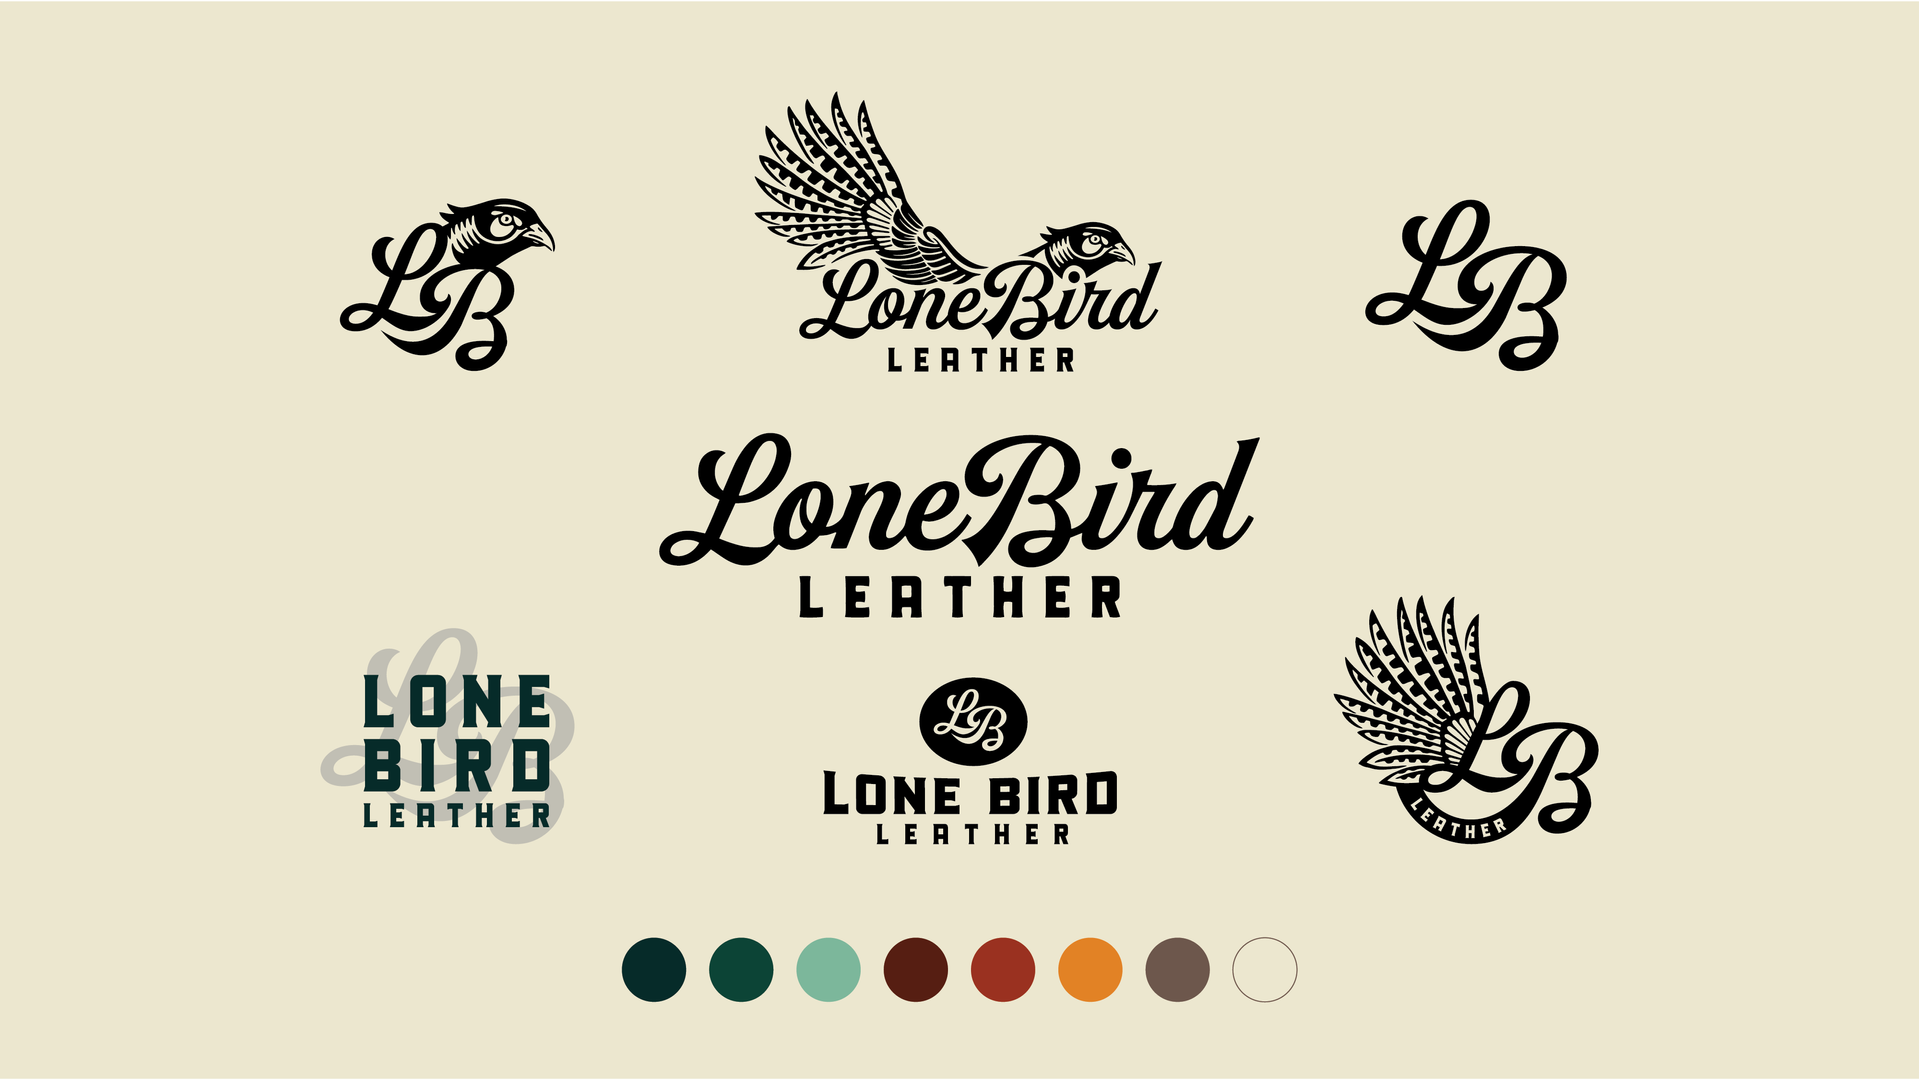 Lone Bird Leather Concept 1a-08.png